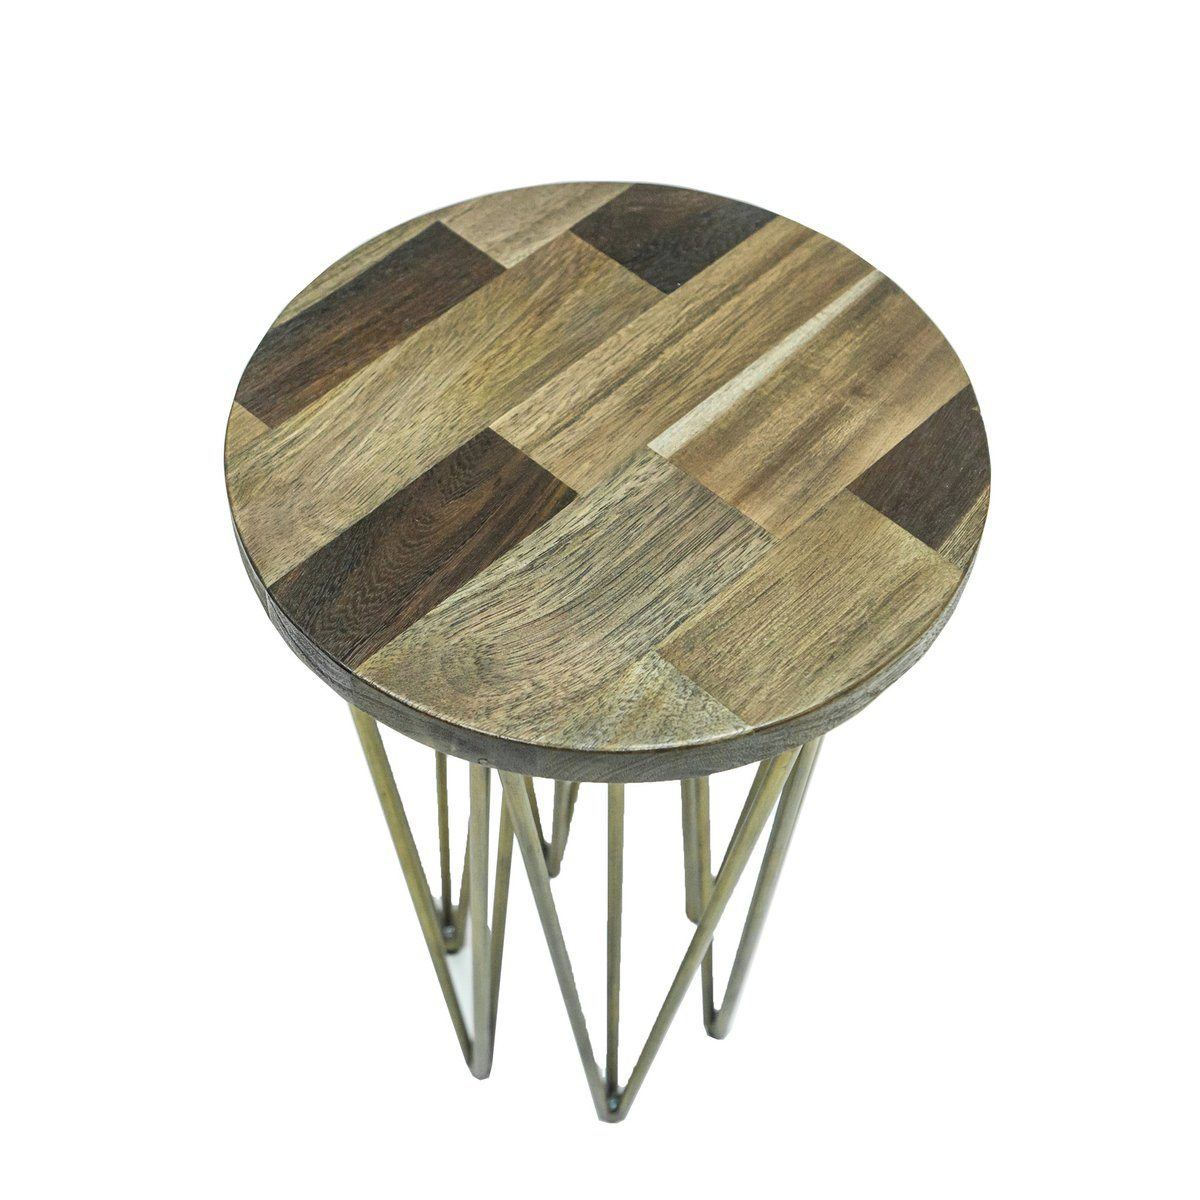 Mixed Solid Wood Round Side TABLE - Showhome Furniture